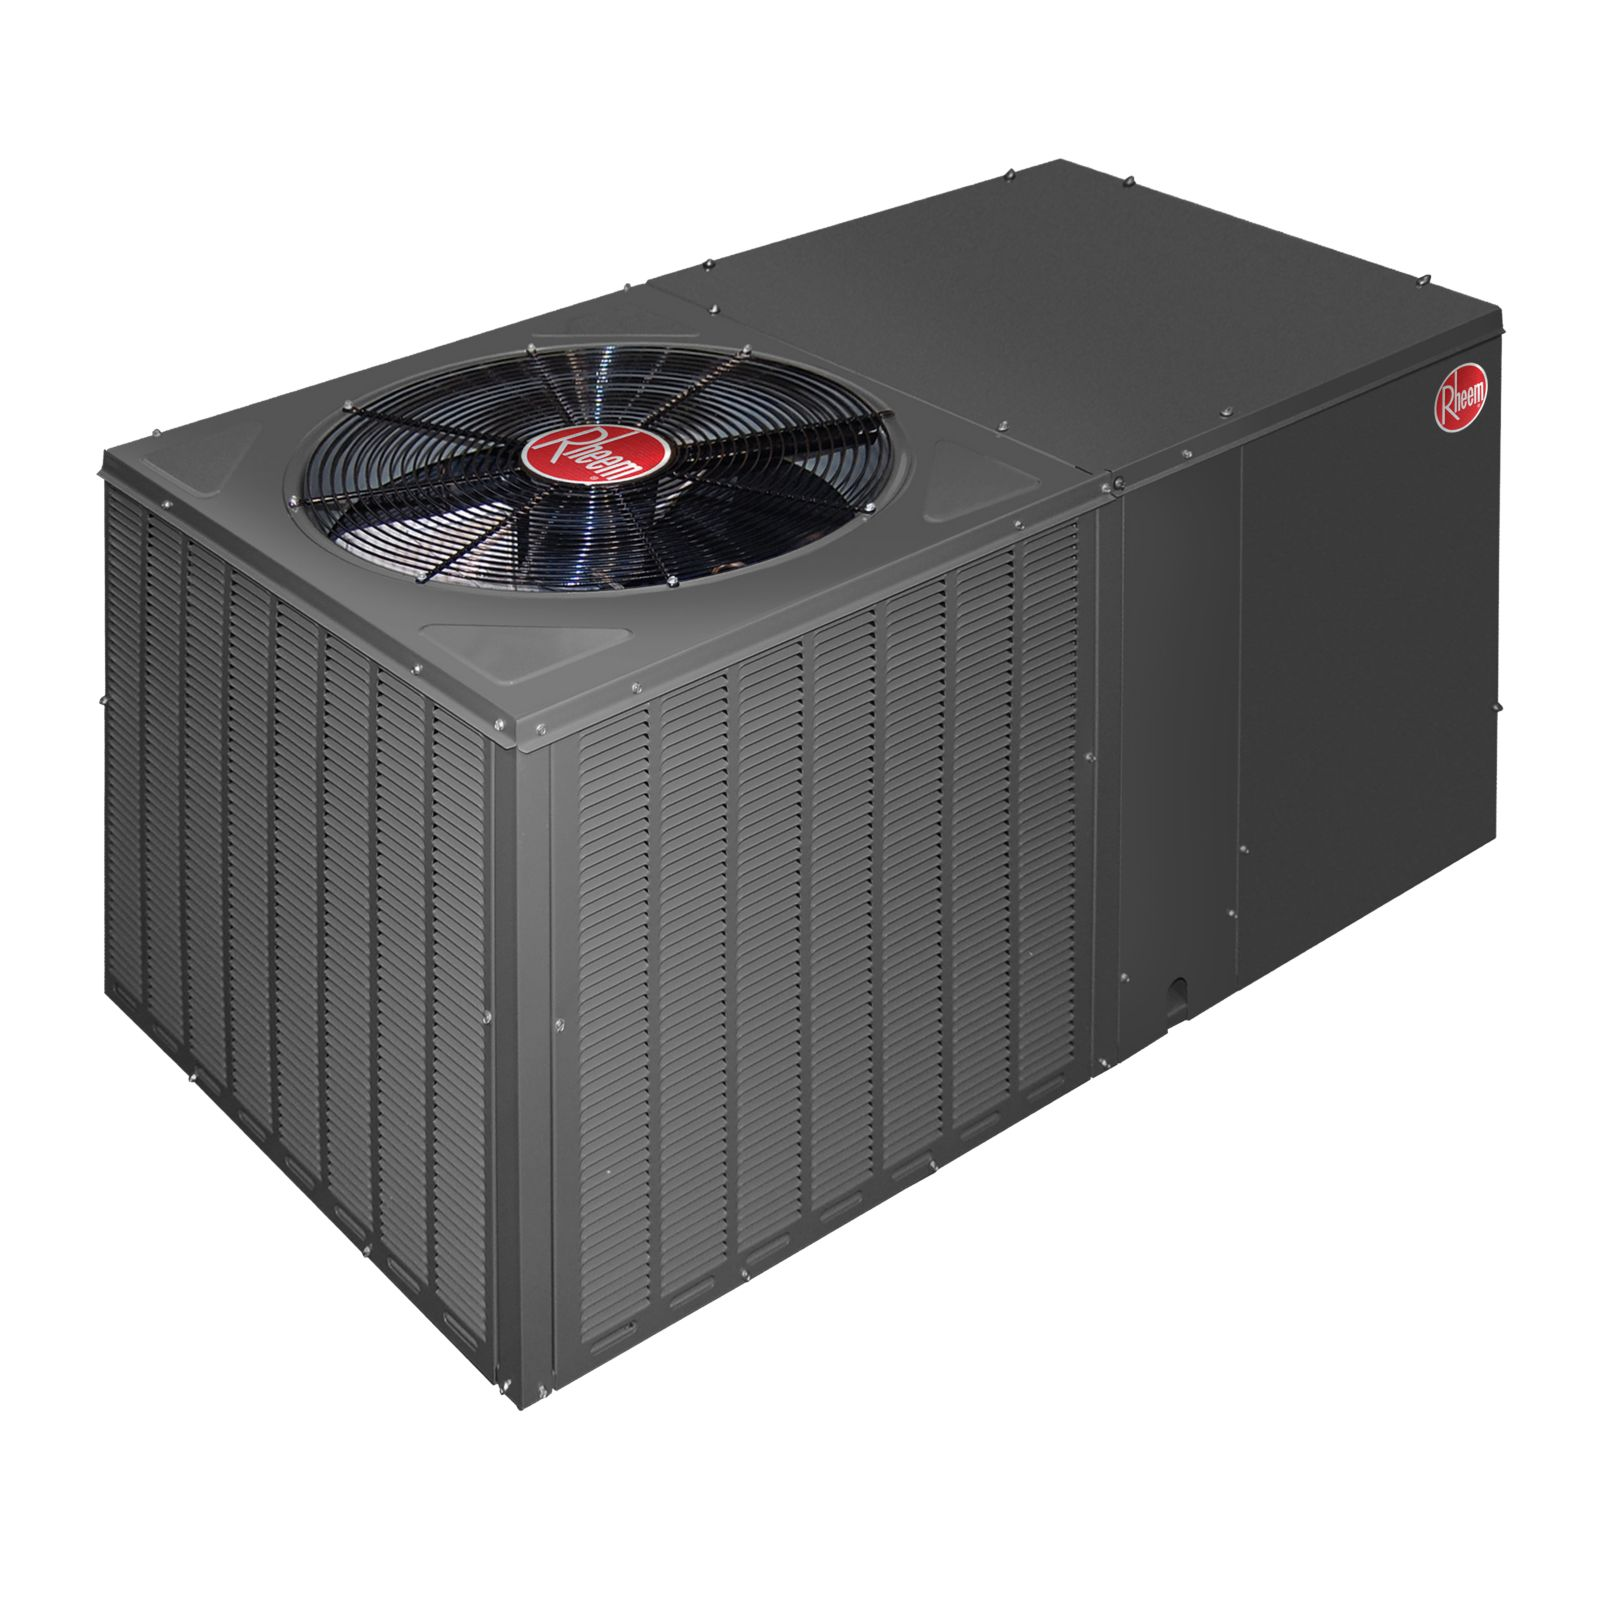 Rheem RQRM-A030JK000 - Classic 2 1/2 Ton, 15/16 SEER, Packaged Heat Pump With Horizontal Discharge, 208-230 V, 1 Ph, 60 Hz